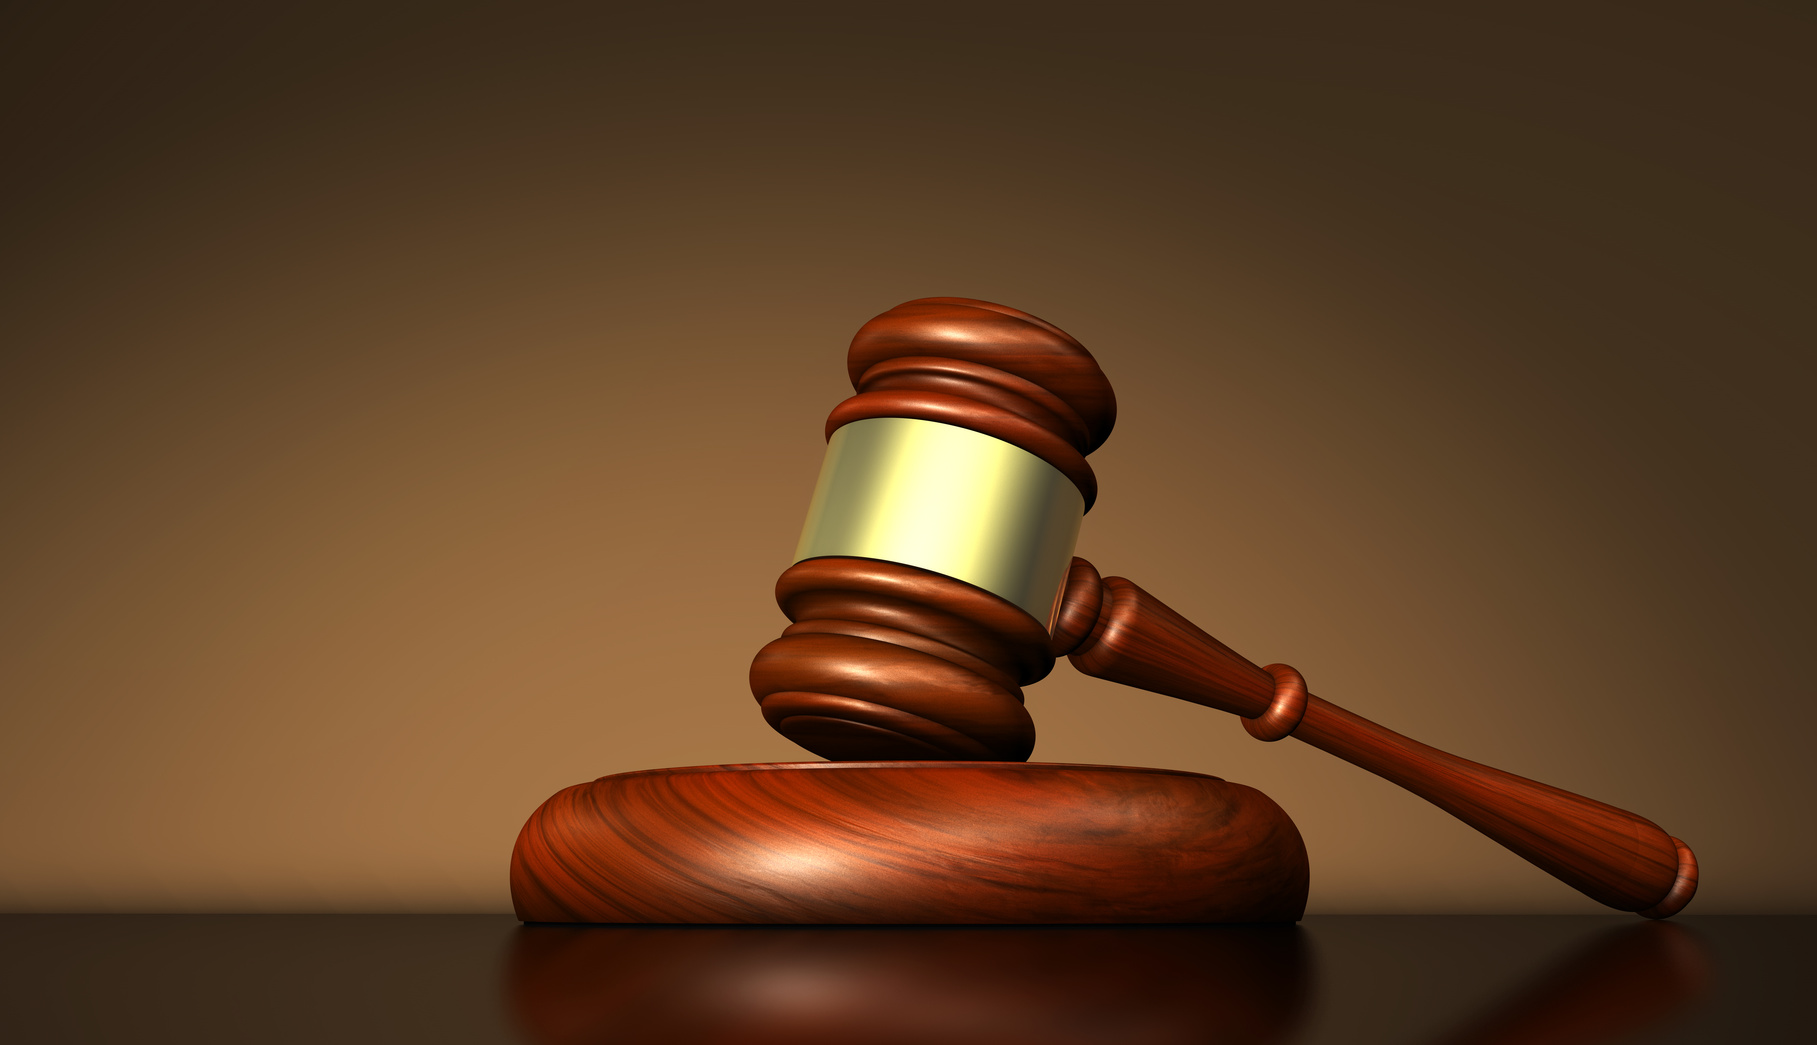 Law justice and judge symbol concept with a gavel on a wooden desktop 3D illustration.